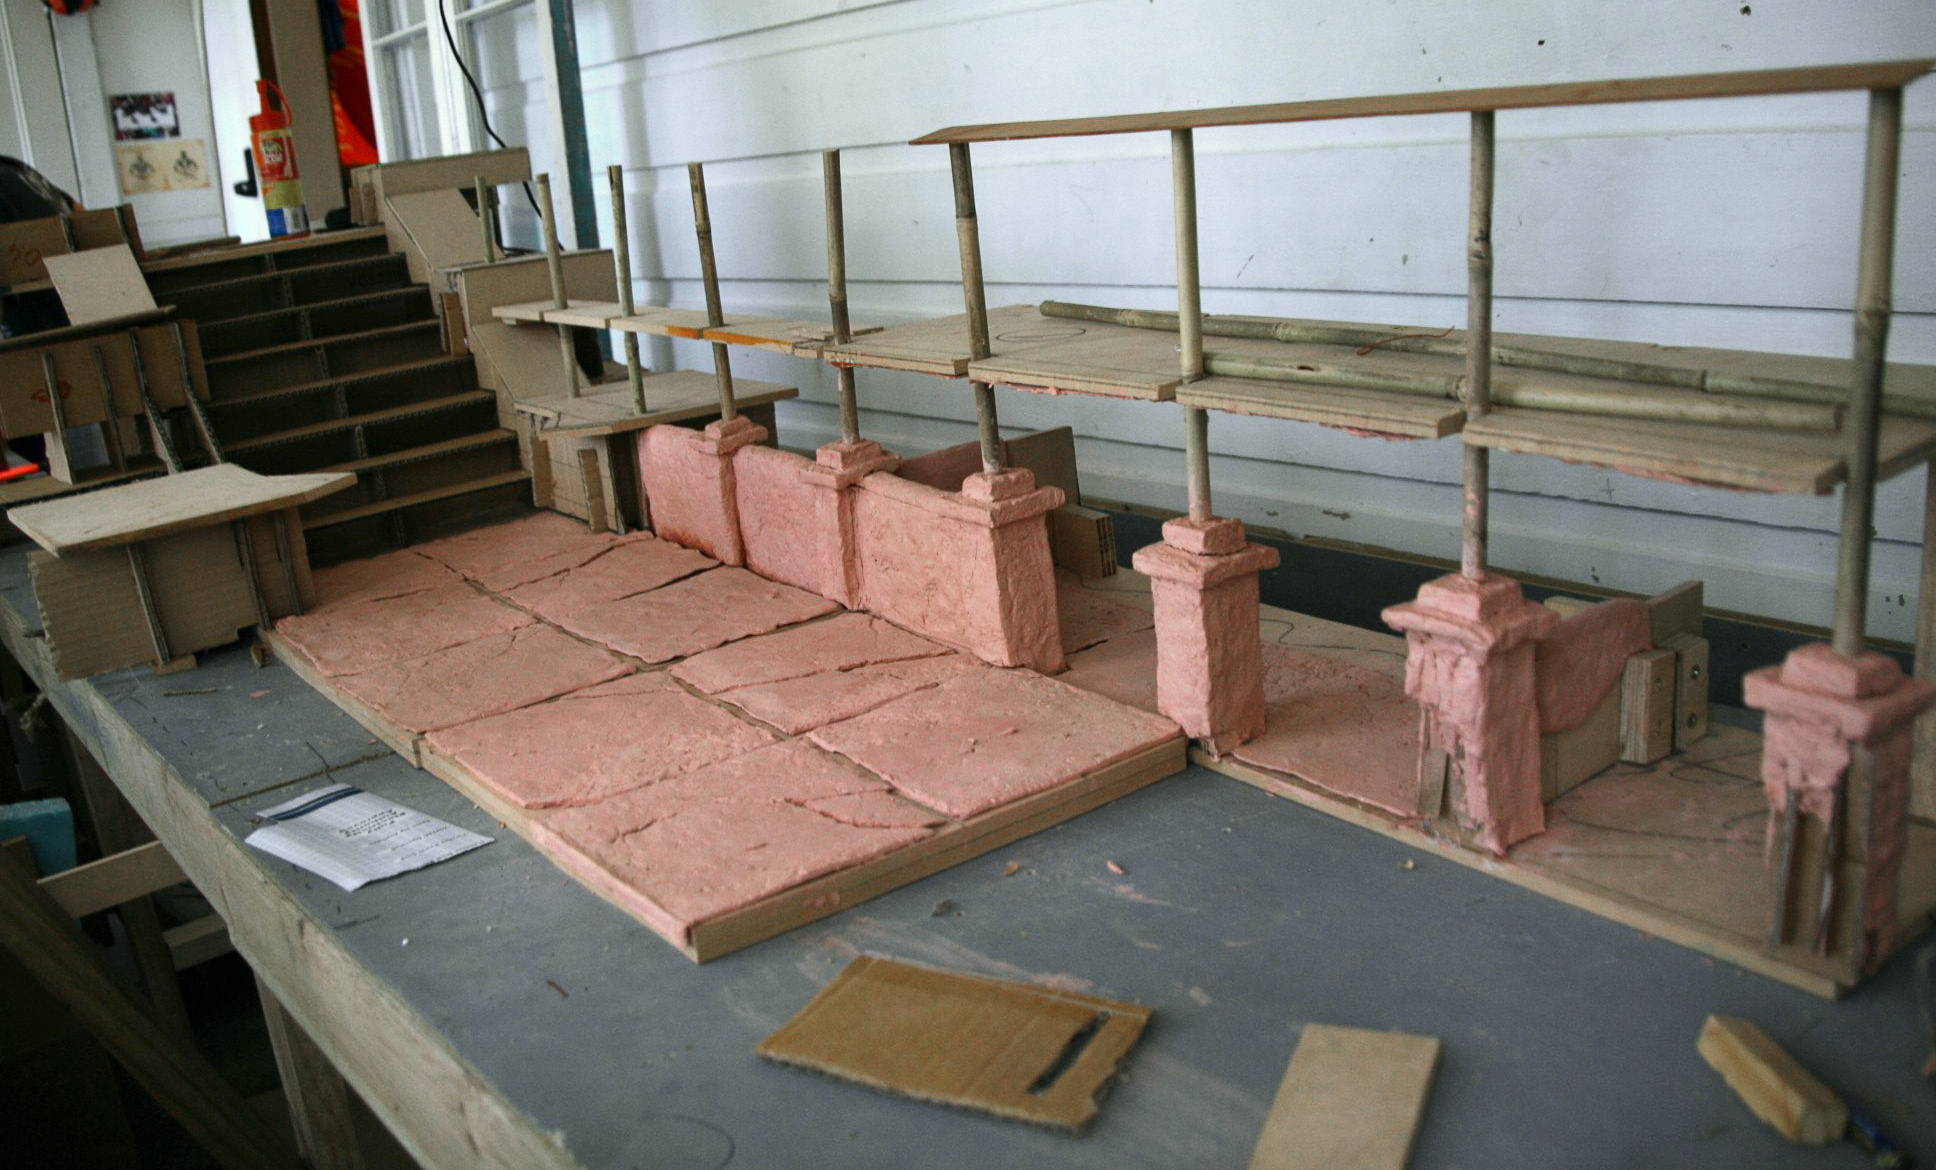 The set was constructed from a mixture of Wood and Cardboard.